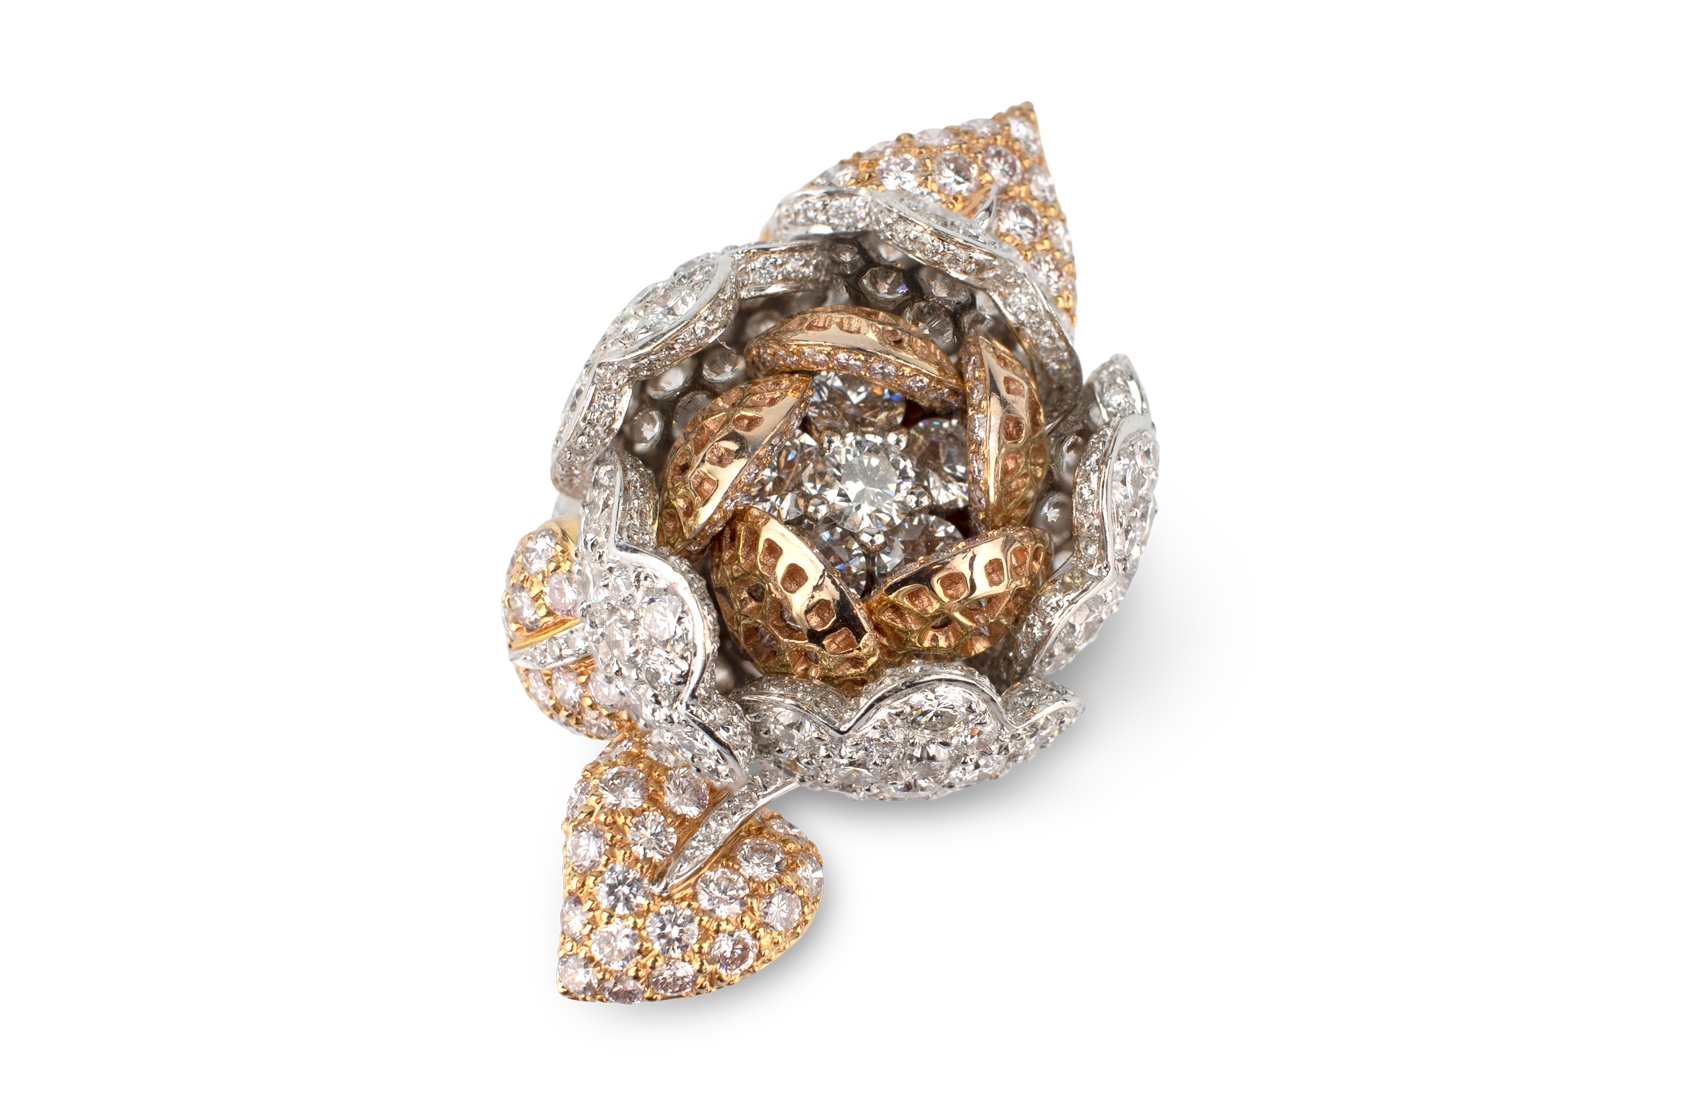 Pink & White Diamond Flower Ring - Moveable Petals-2